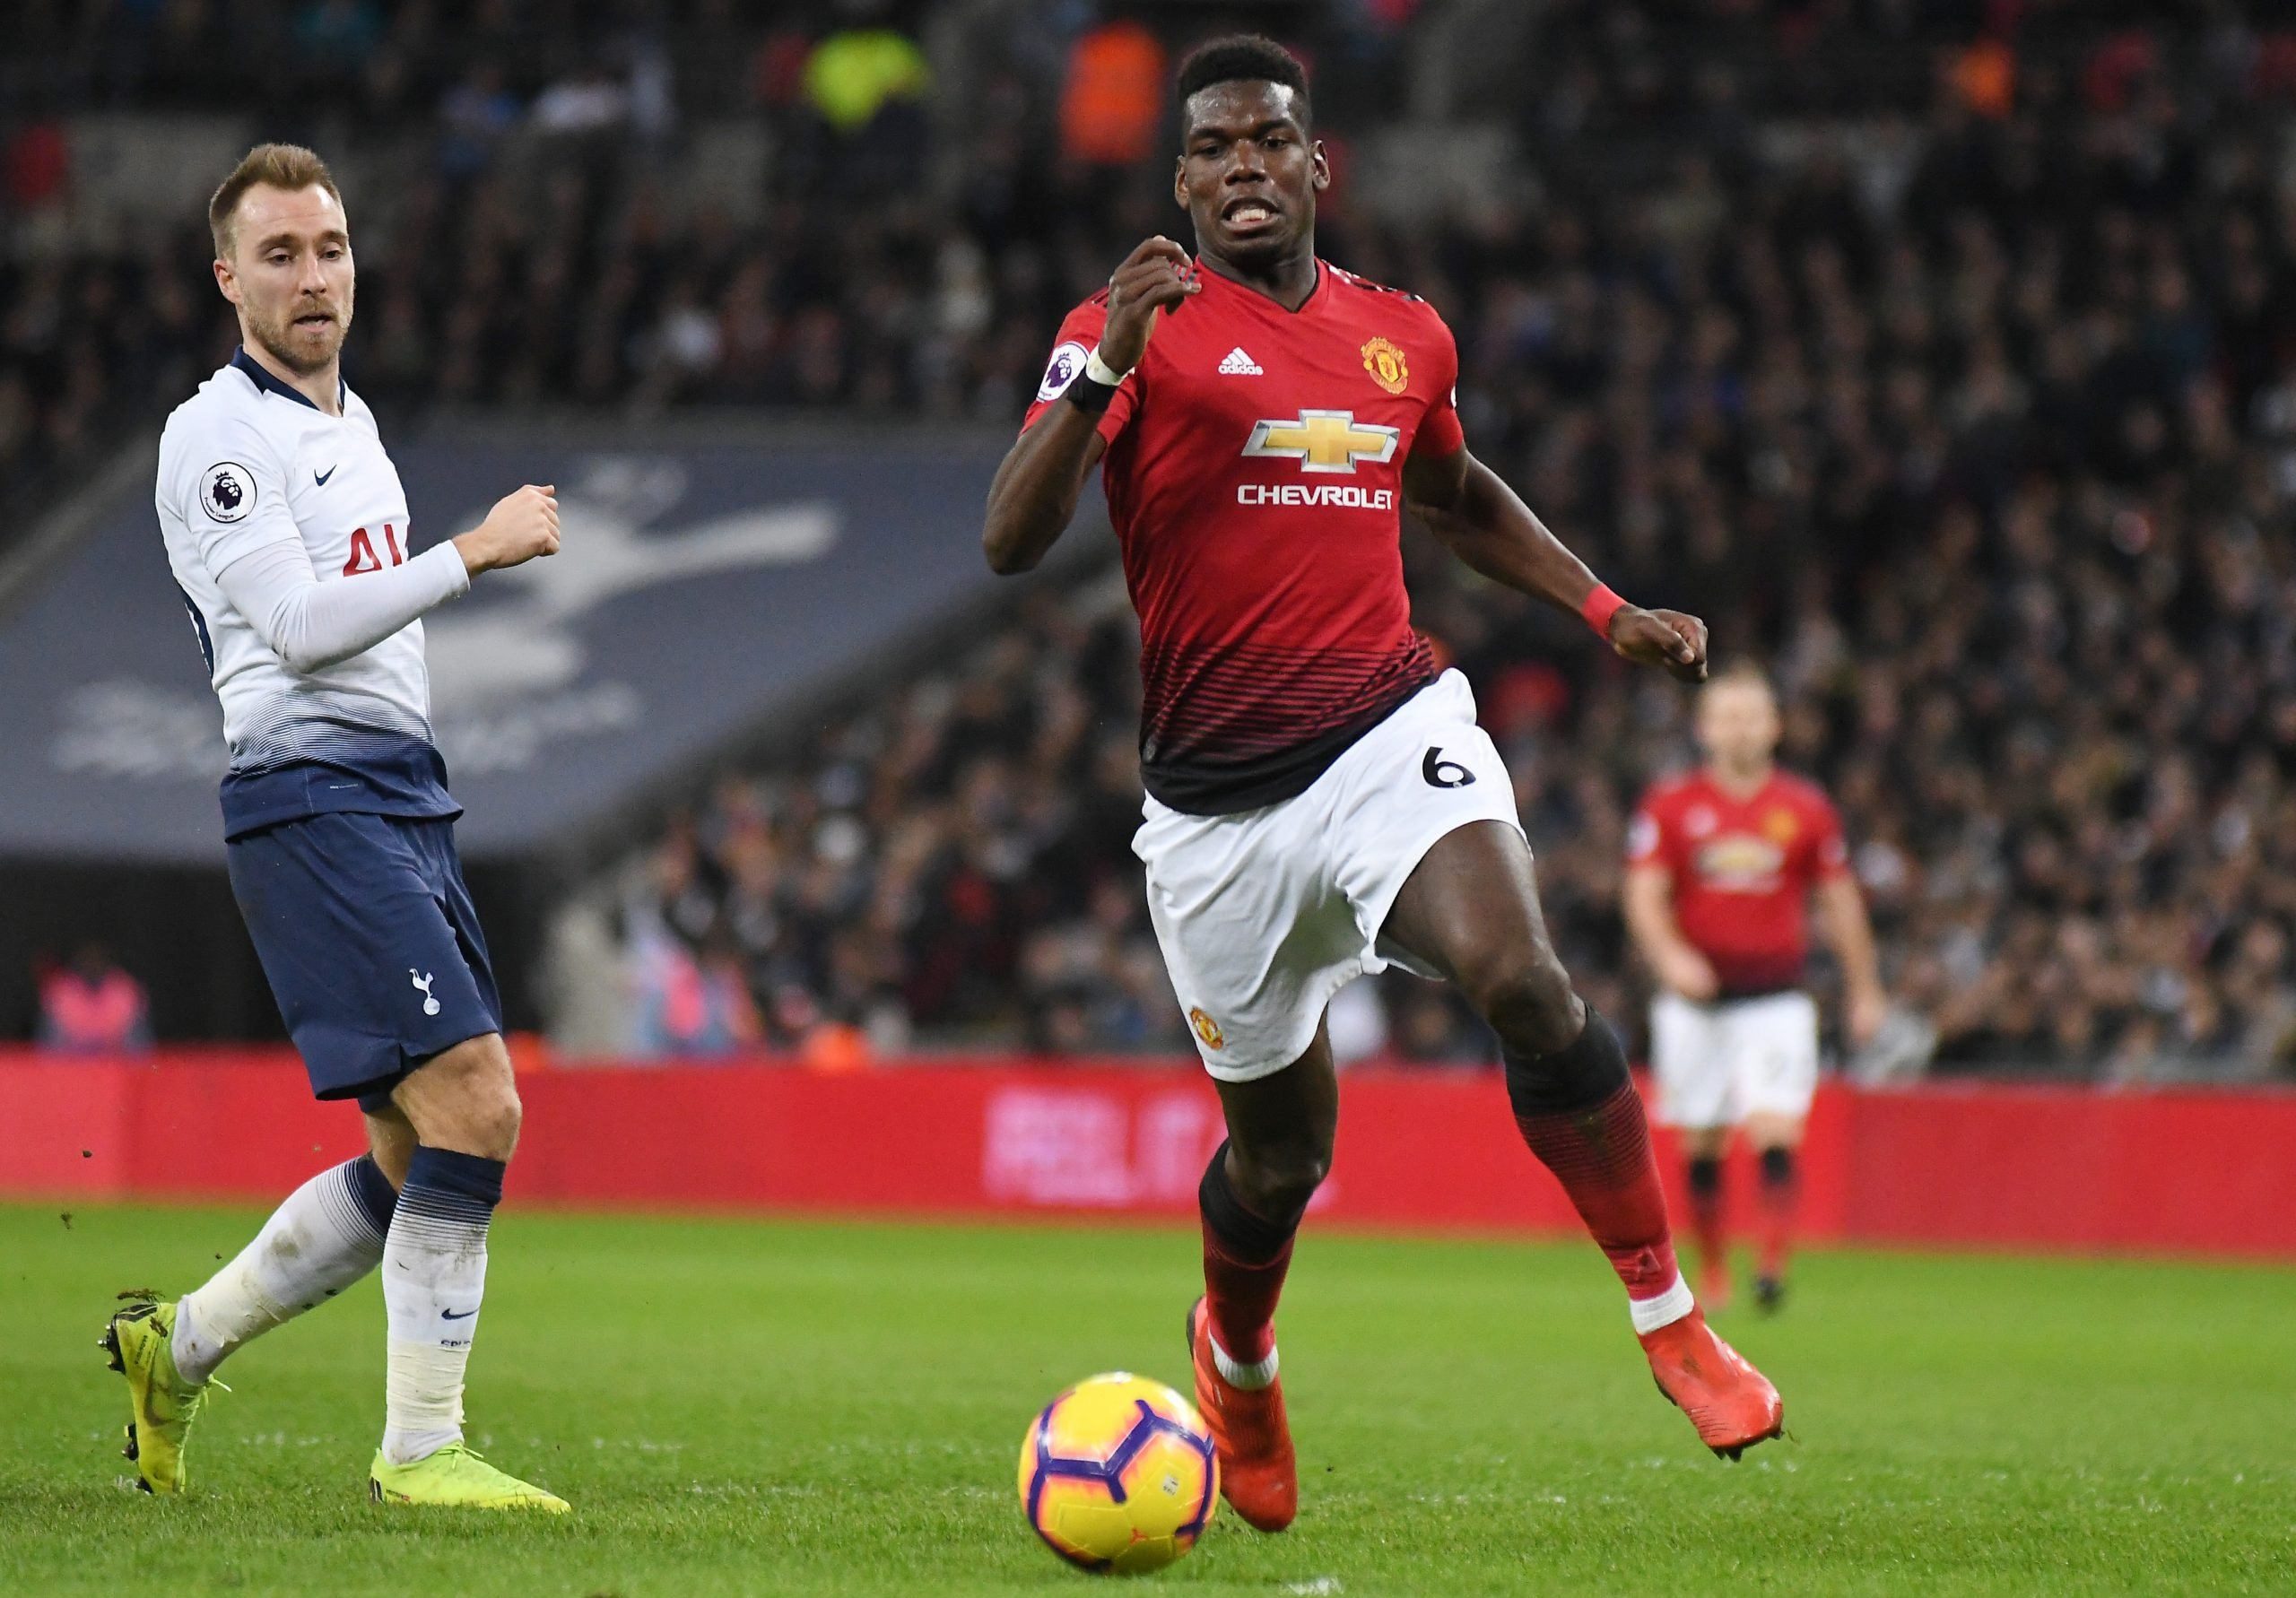 Paul Pogba in action on the football field